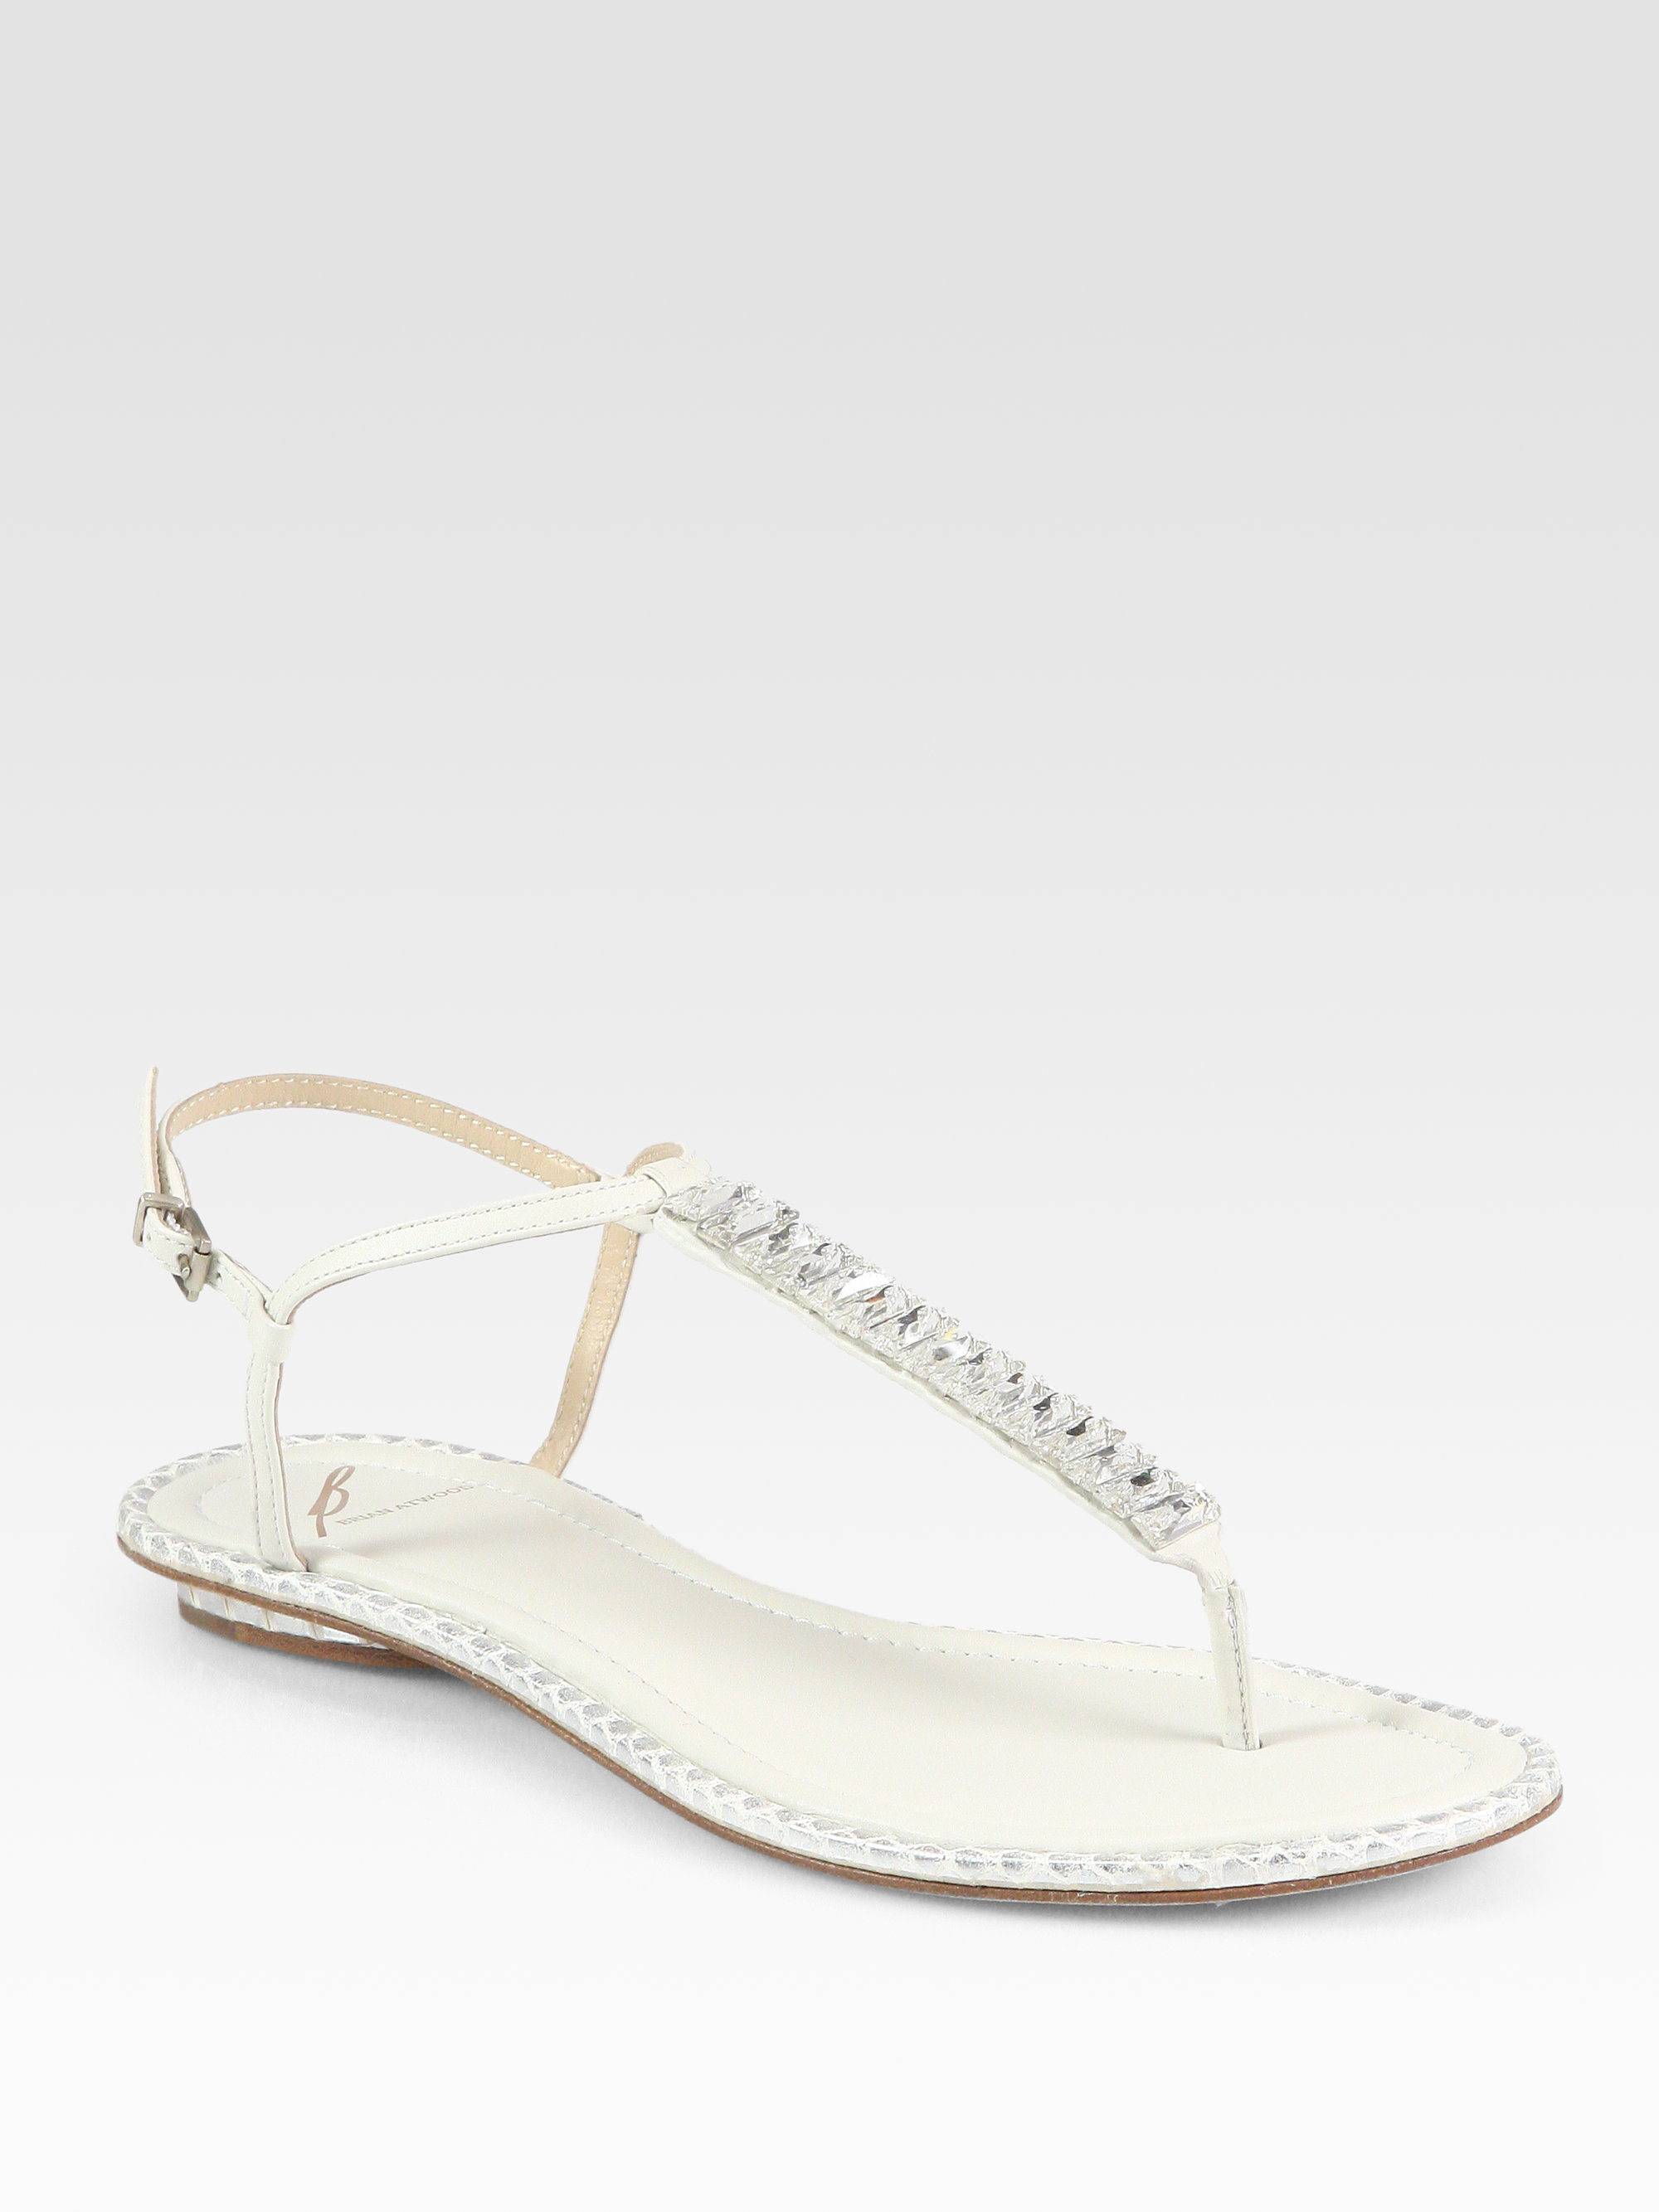 9bced974904b6 Lyst - B Brian Atwood Jeweled Leather Thong Sandals in White